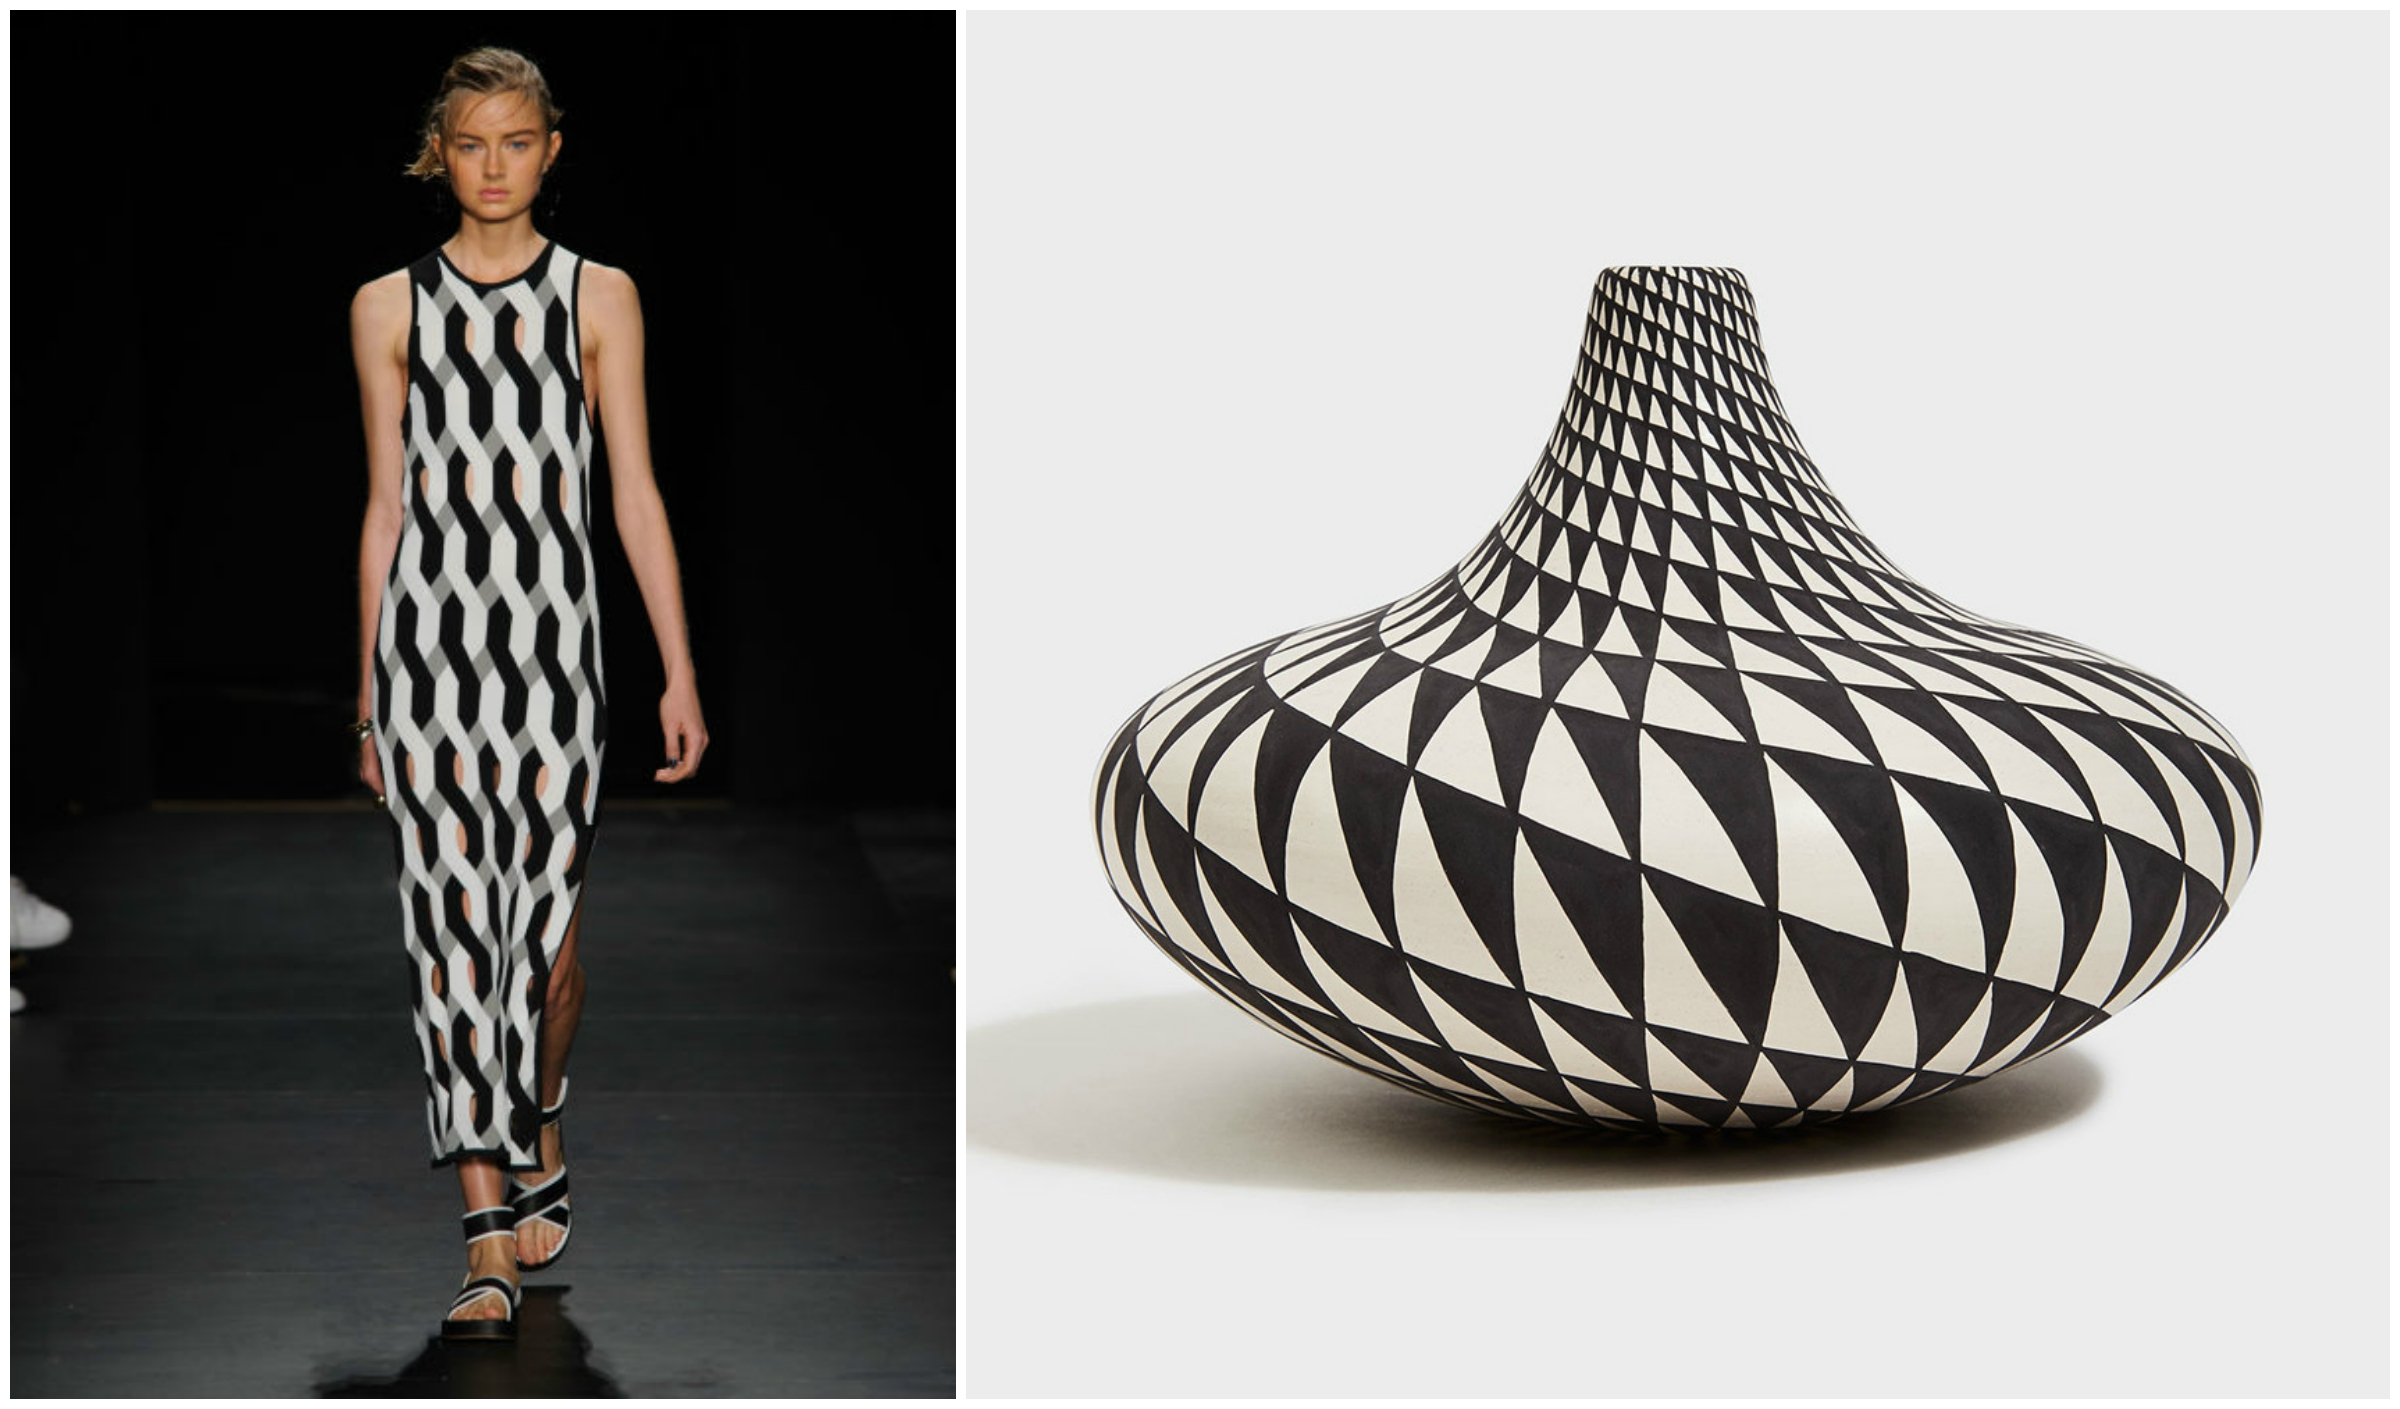 Graphic Black and White   The stark elegance of graphic black and white patterning was on full display in Rag & Bone's powerful collection. Acoma pottery captures a similarly eye-catching aesthetic with its two-toned geometric minimalism. The mind-numbing complexity of Acoma pottery is a sight to behold, creating the perfect decorative accent in any home.